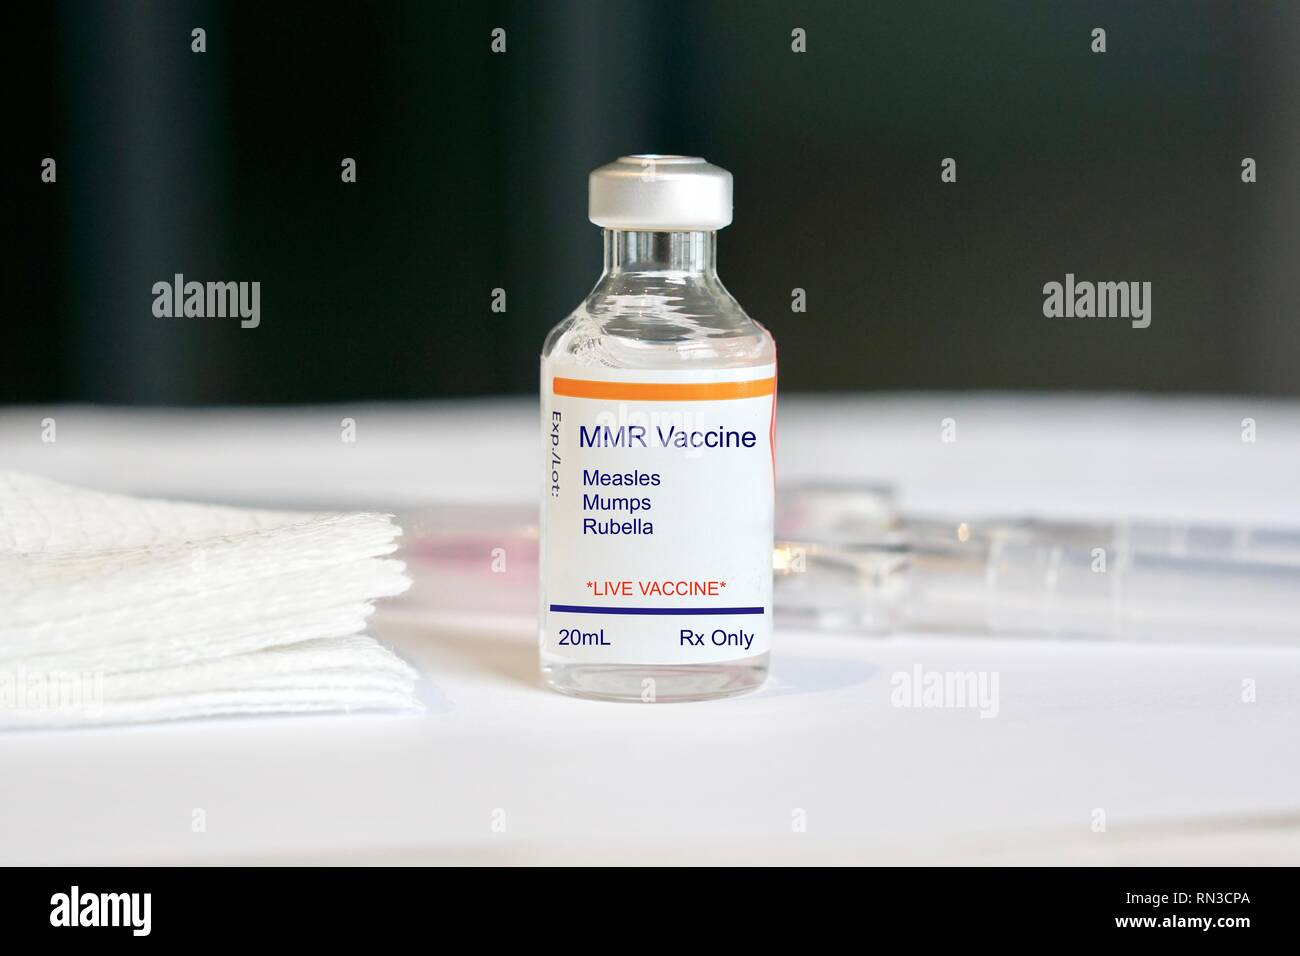 MMR Vaccine for measles, mumps, and rubella in a glass vial in a medical setting - Stock Image